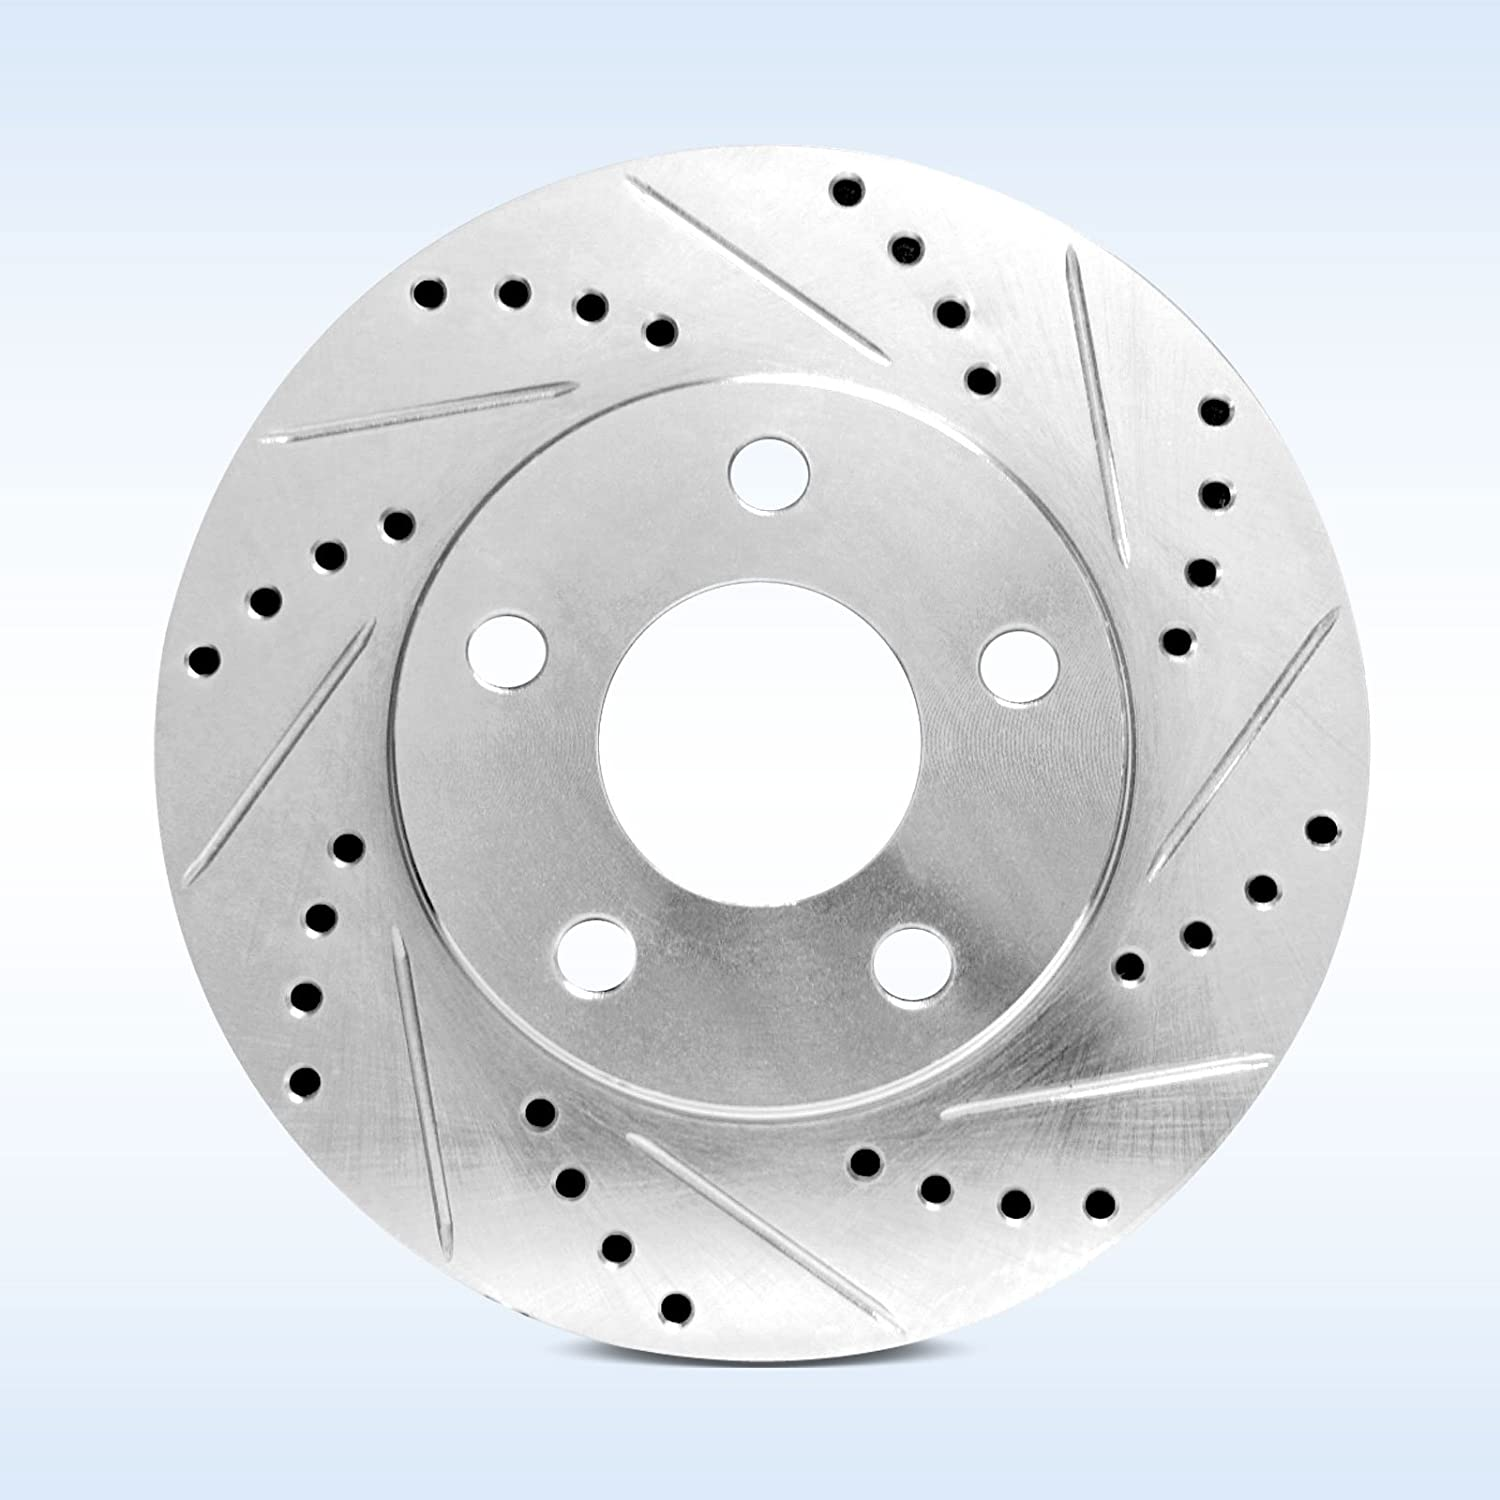 81842 Power Sport Cross Drilled Slotted Brake Rotors and Ceramic Brake Pads Kit REARS